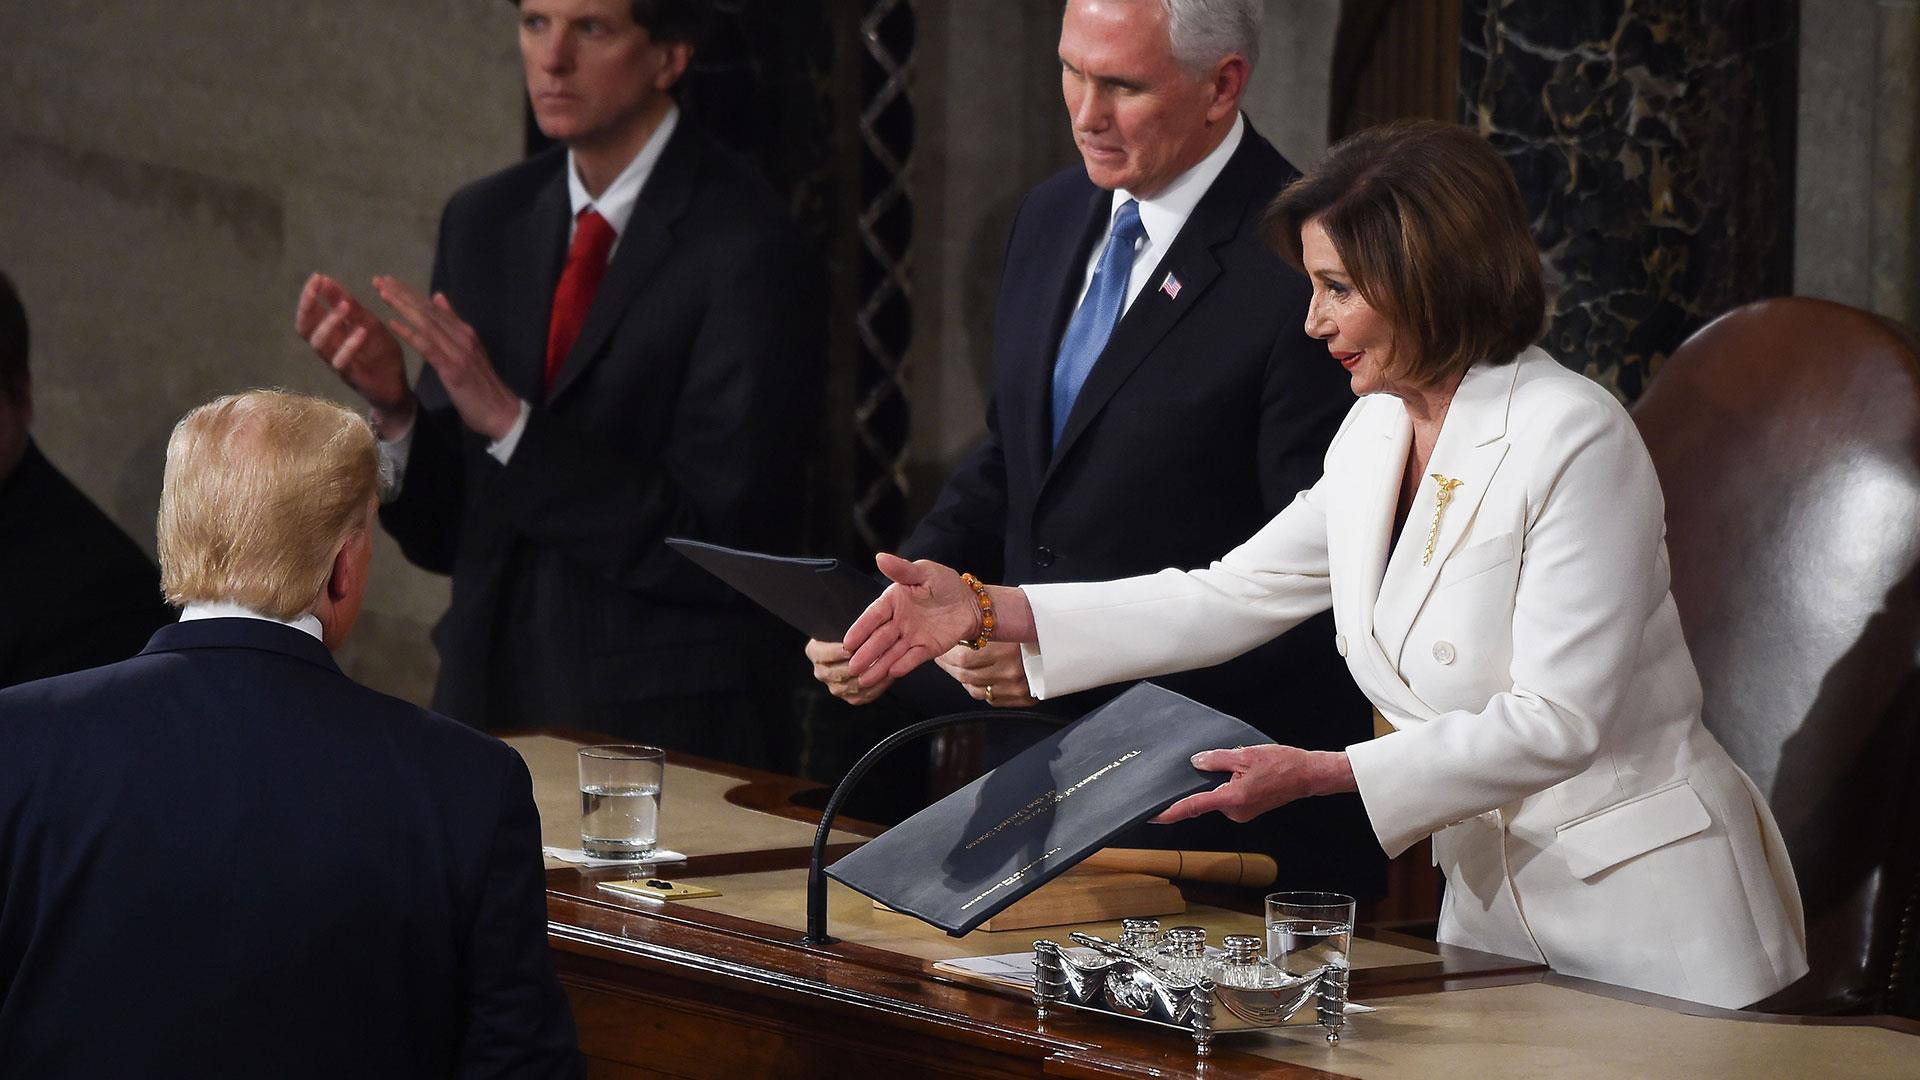 Image result for Watch: Trump appears to avoid handshake with Pelosi""